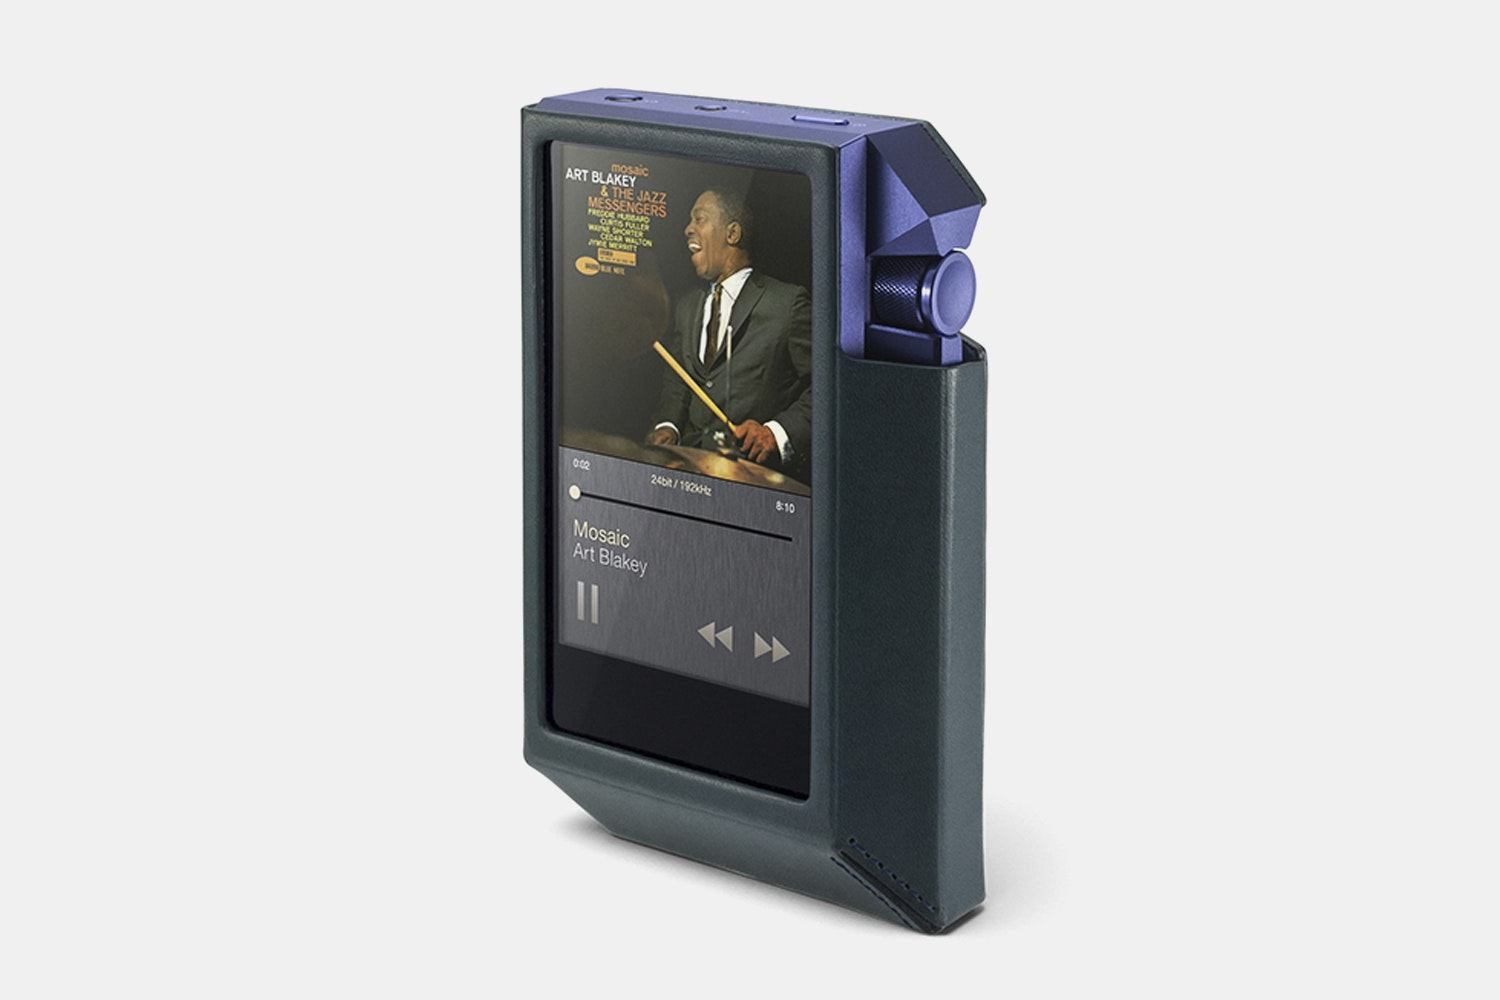 Astell & Kern AK240 Blue Note DAP